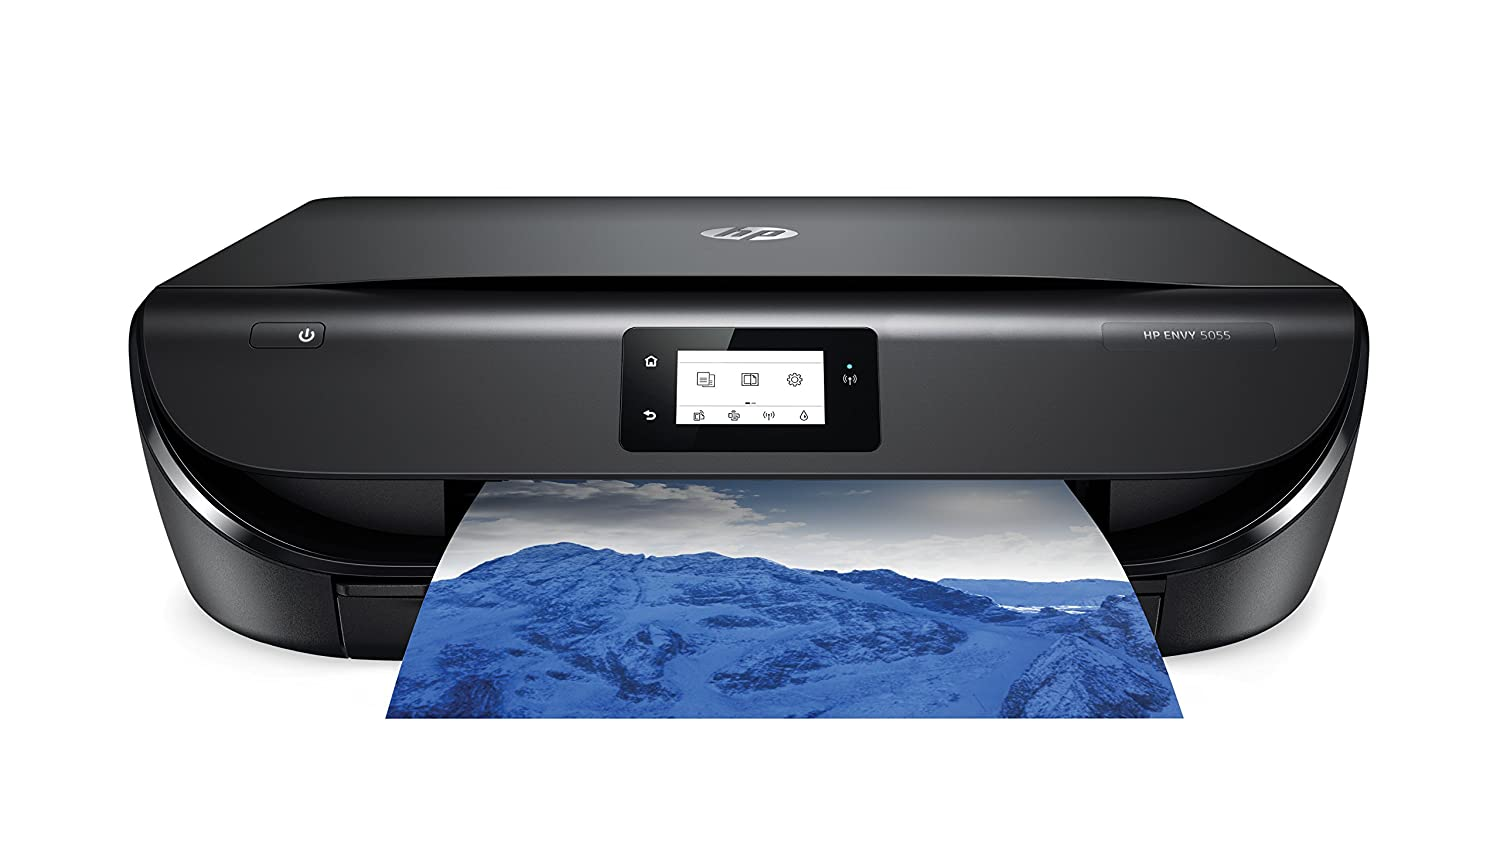 Top 11 Best Printers for Chromebook Reviews in 2019